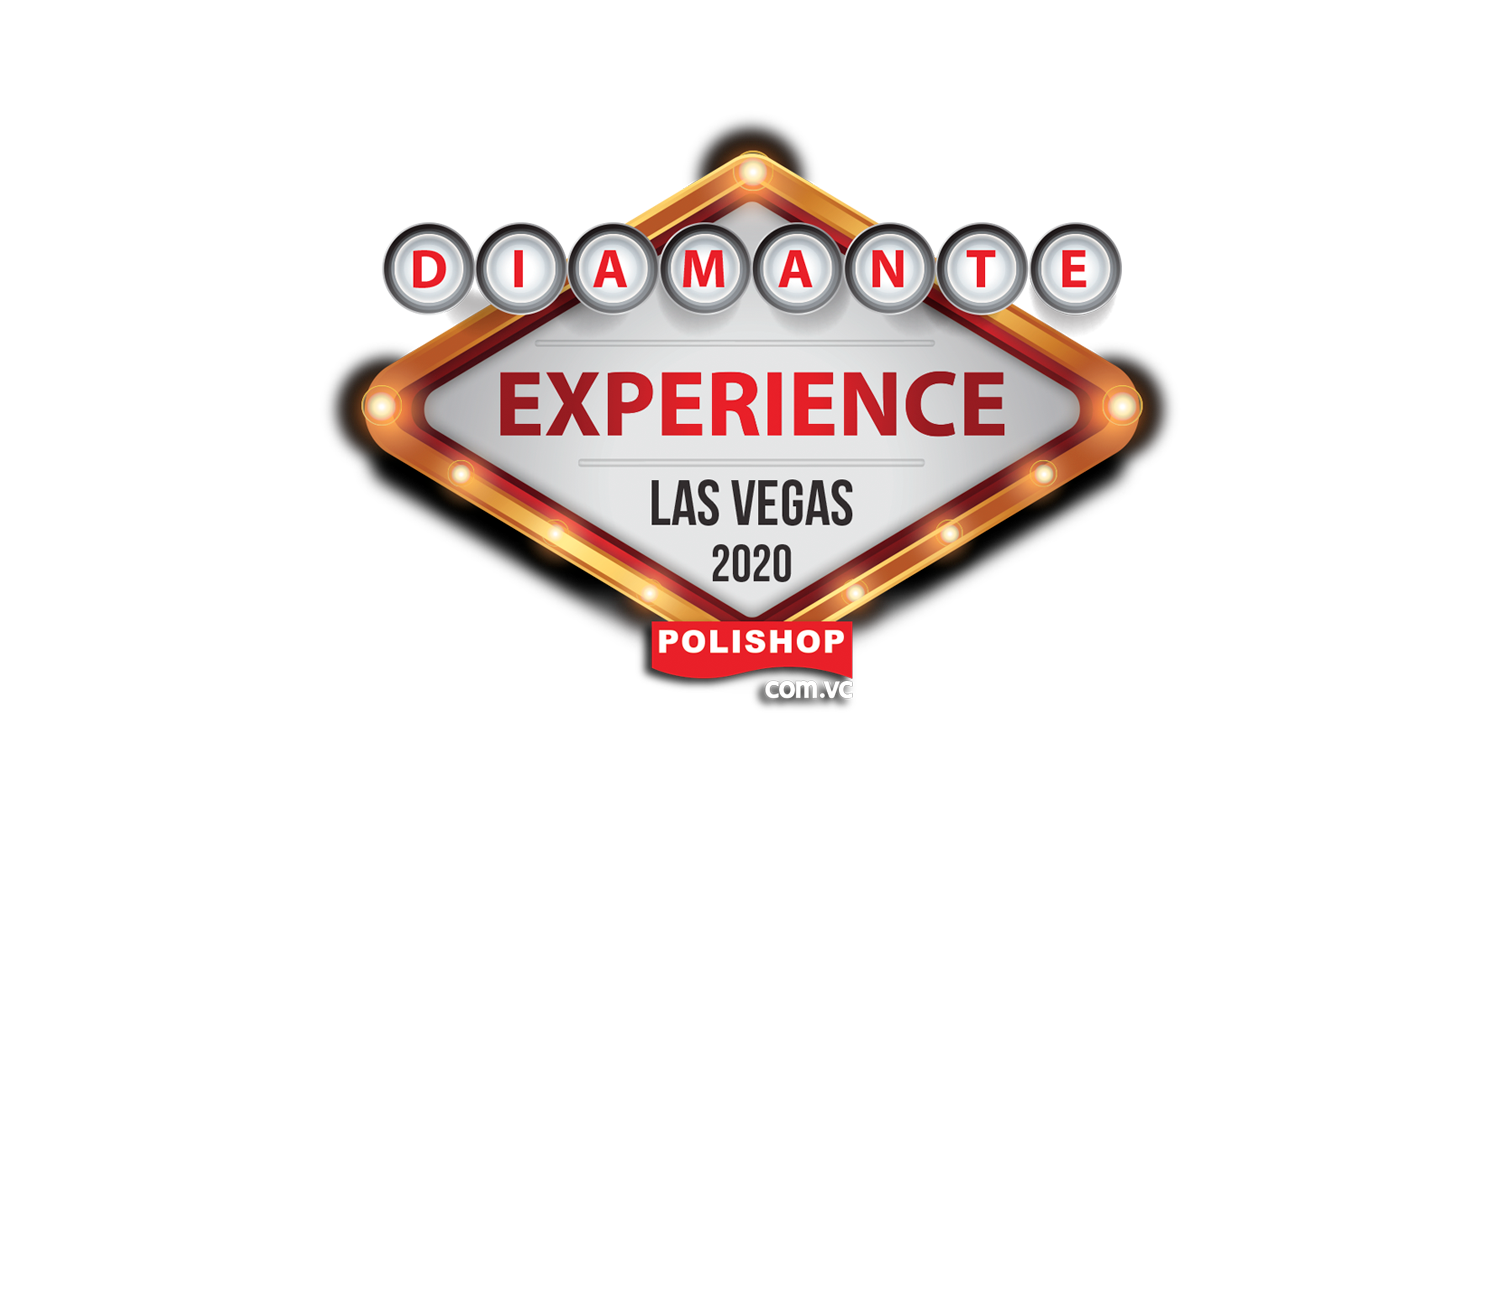 diamanteexperience